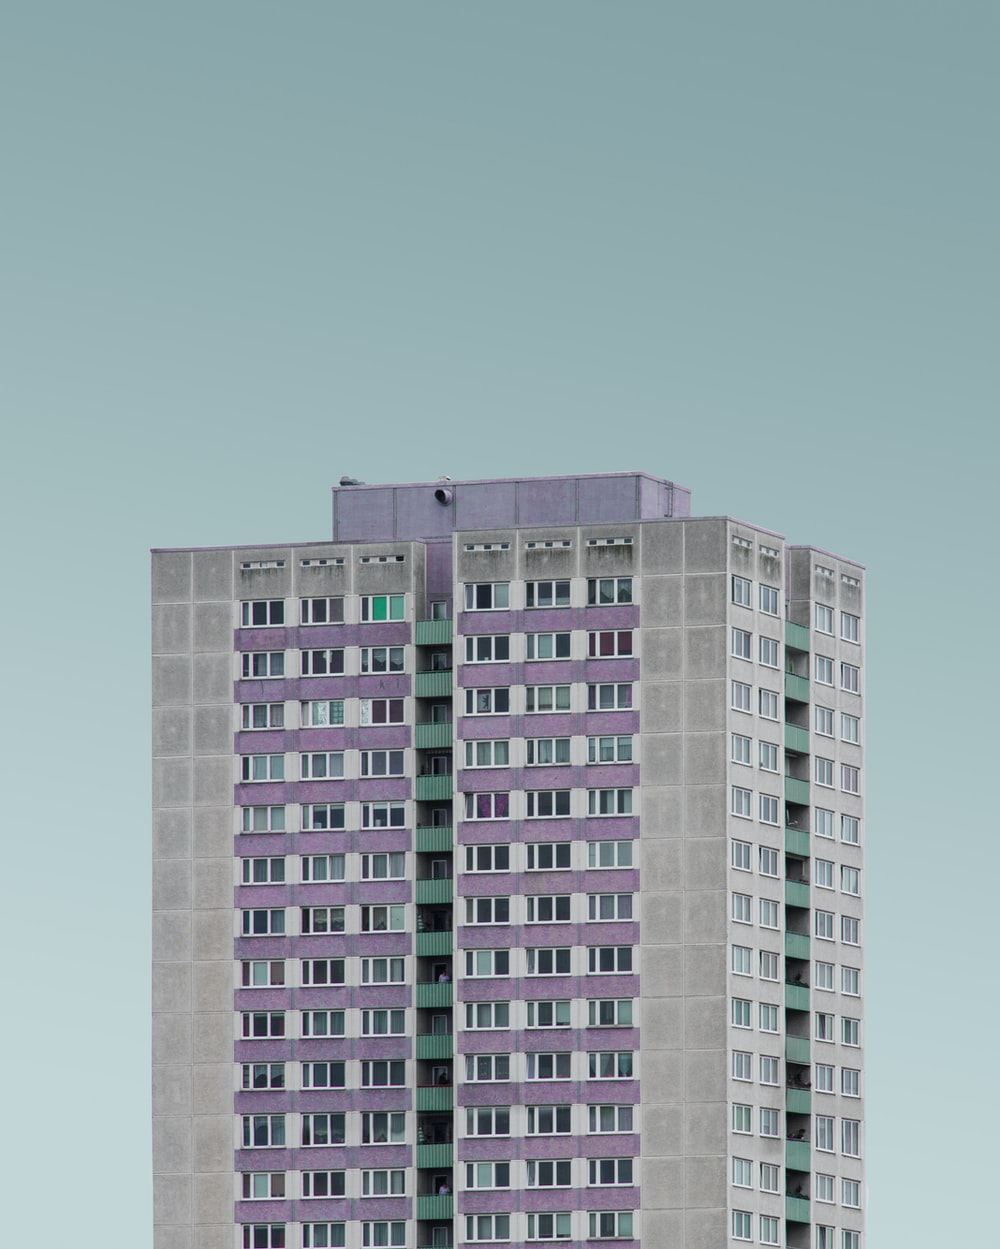 gray and purple high rise building under white clouds